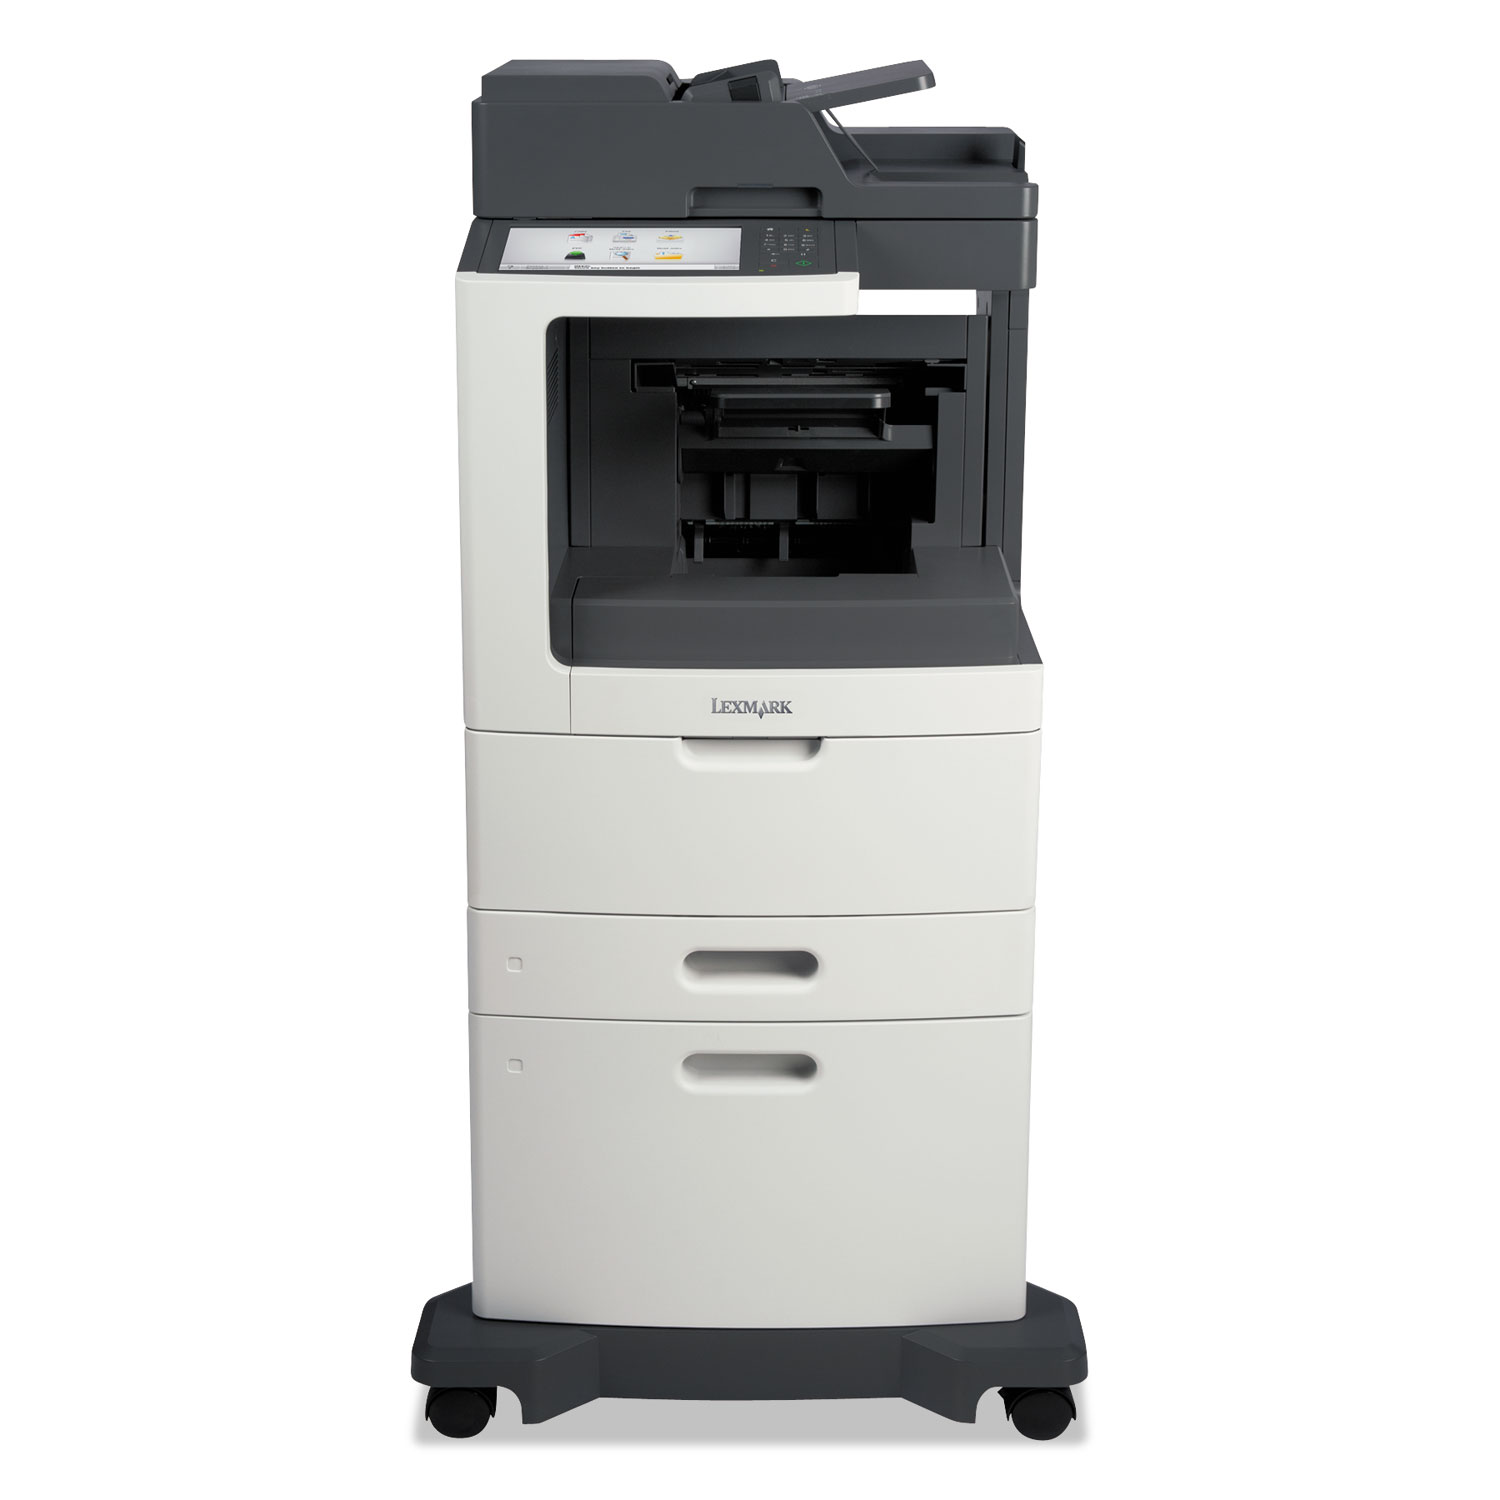 MX811dxfe Multifunction Laser Printer, Copy/Fax/Print/Scan